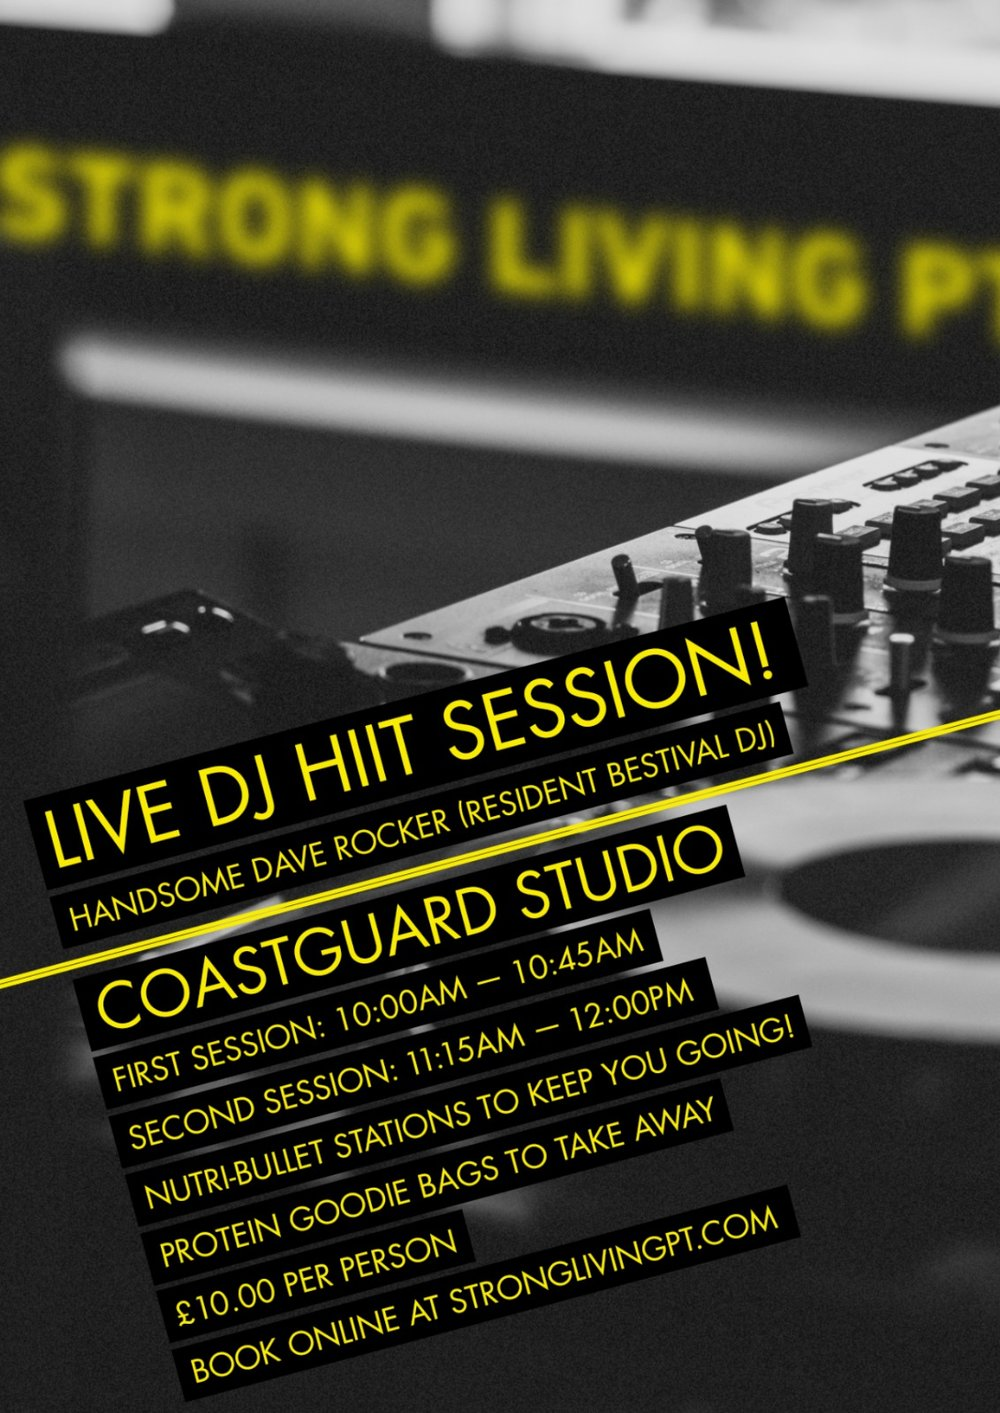 live dj HITT session